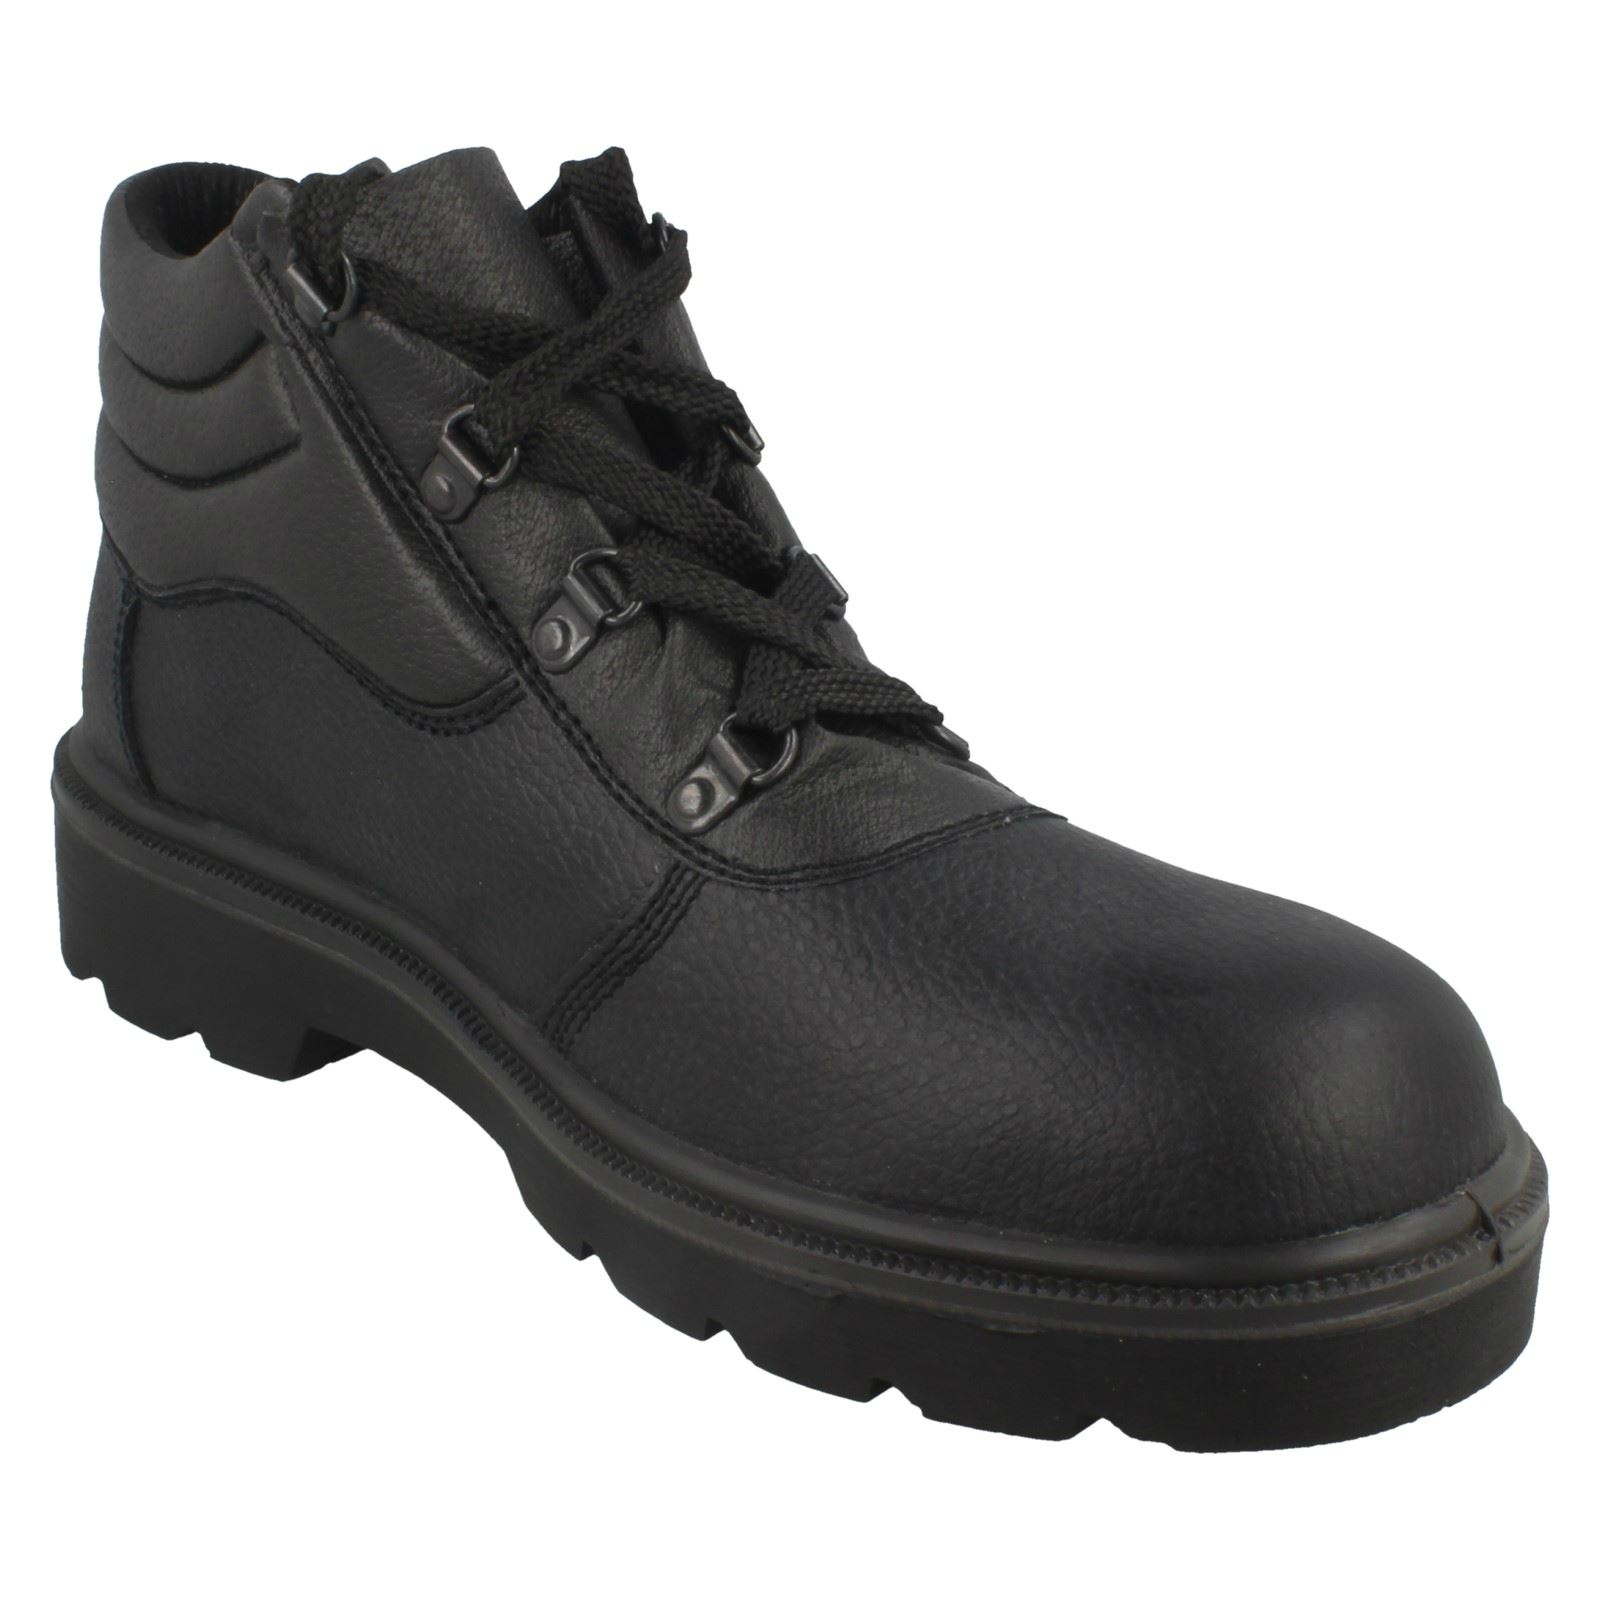 Mens Spot On Safety Leather Boots